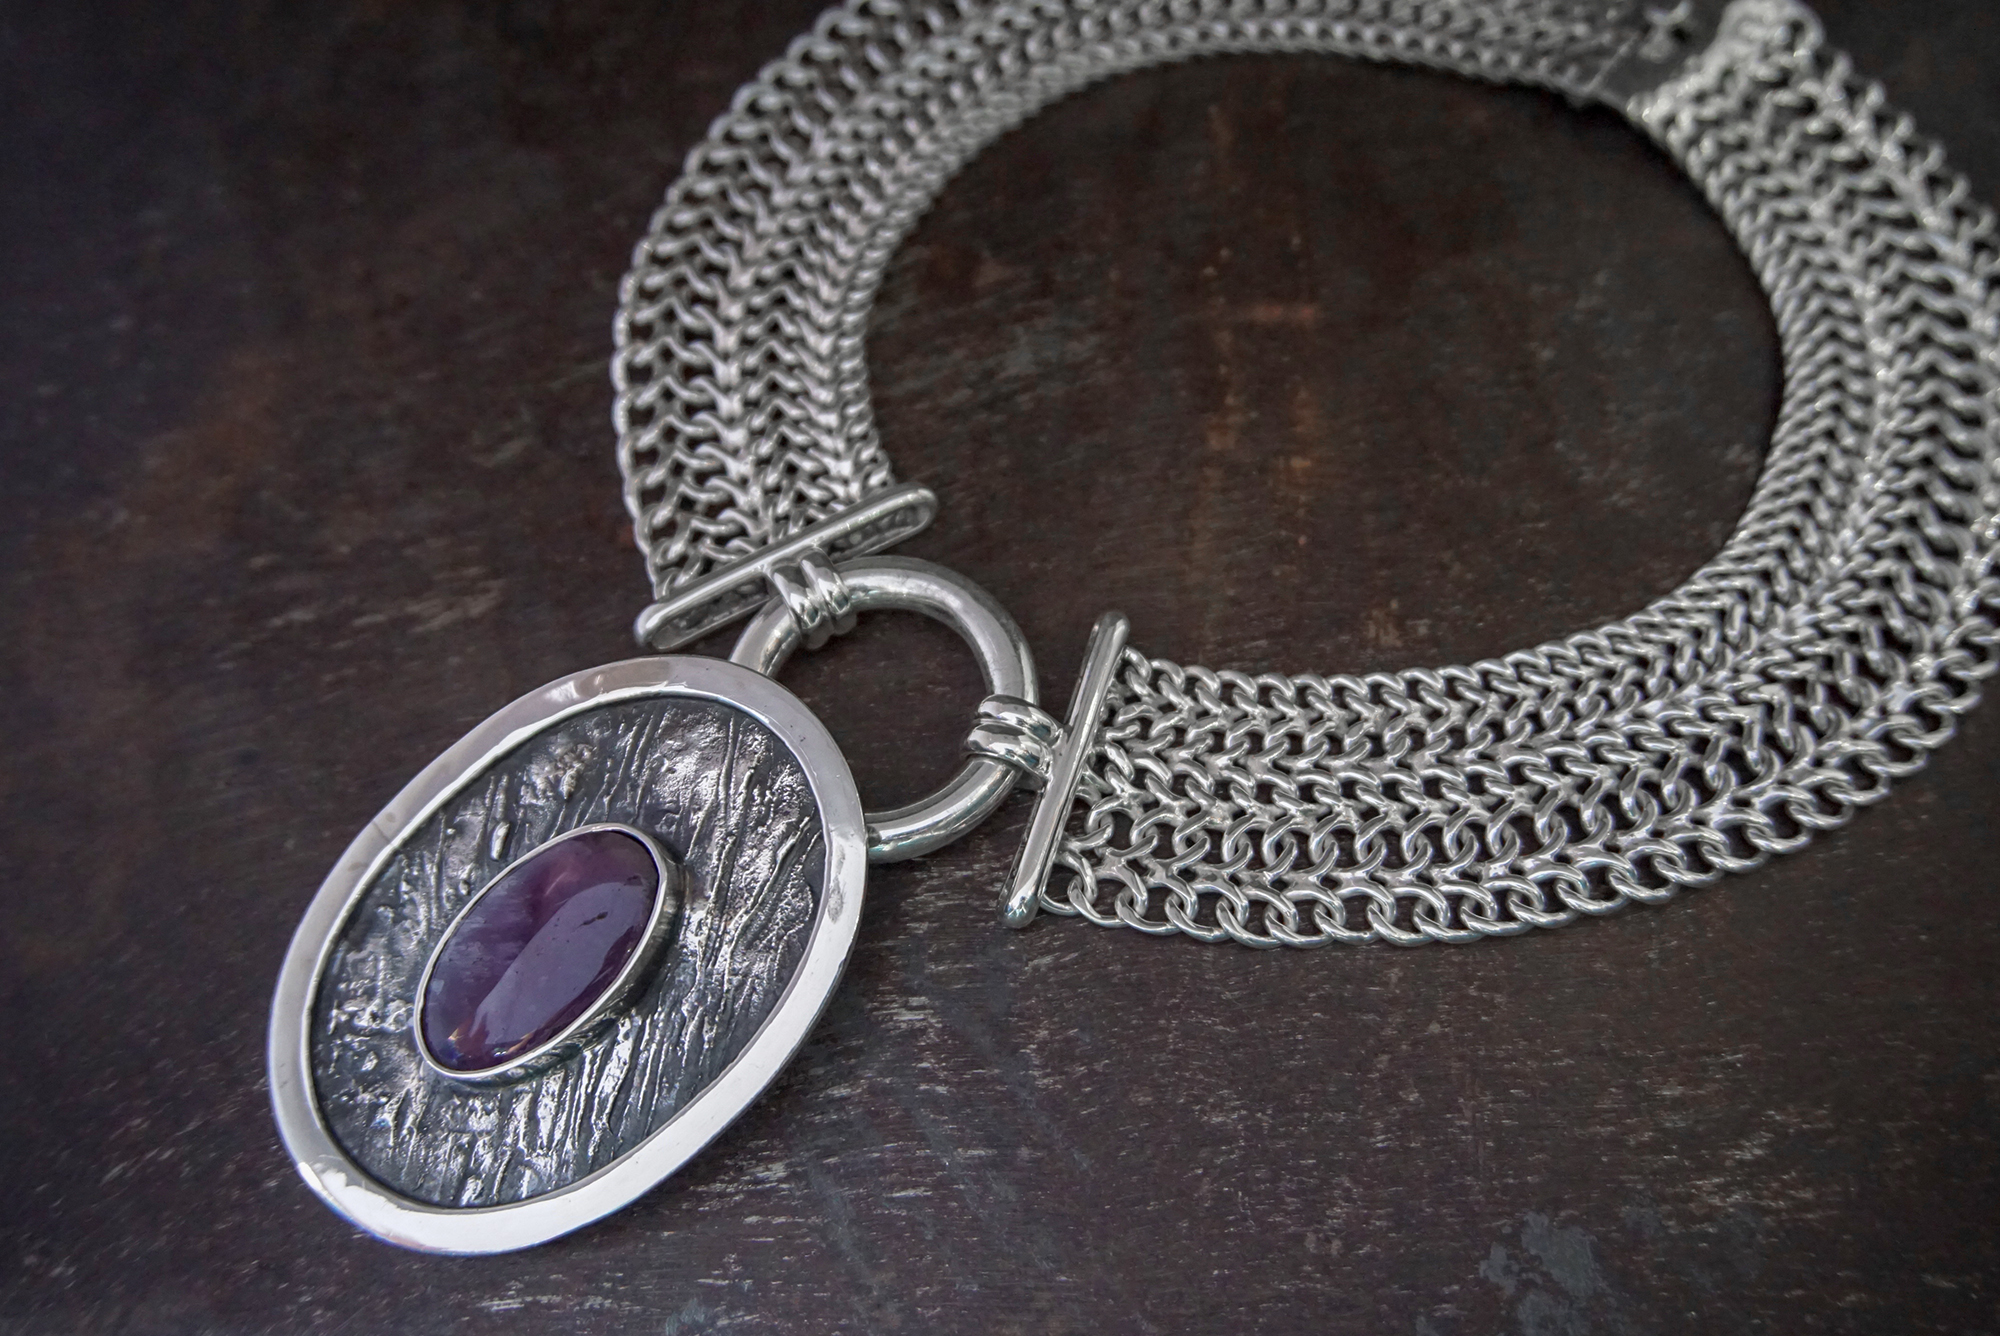 amethyst pendant & cartier style necklace